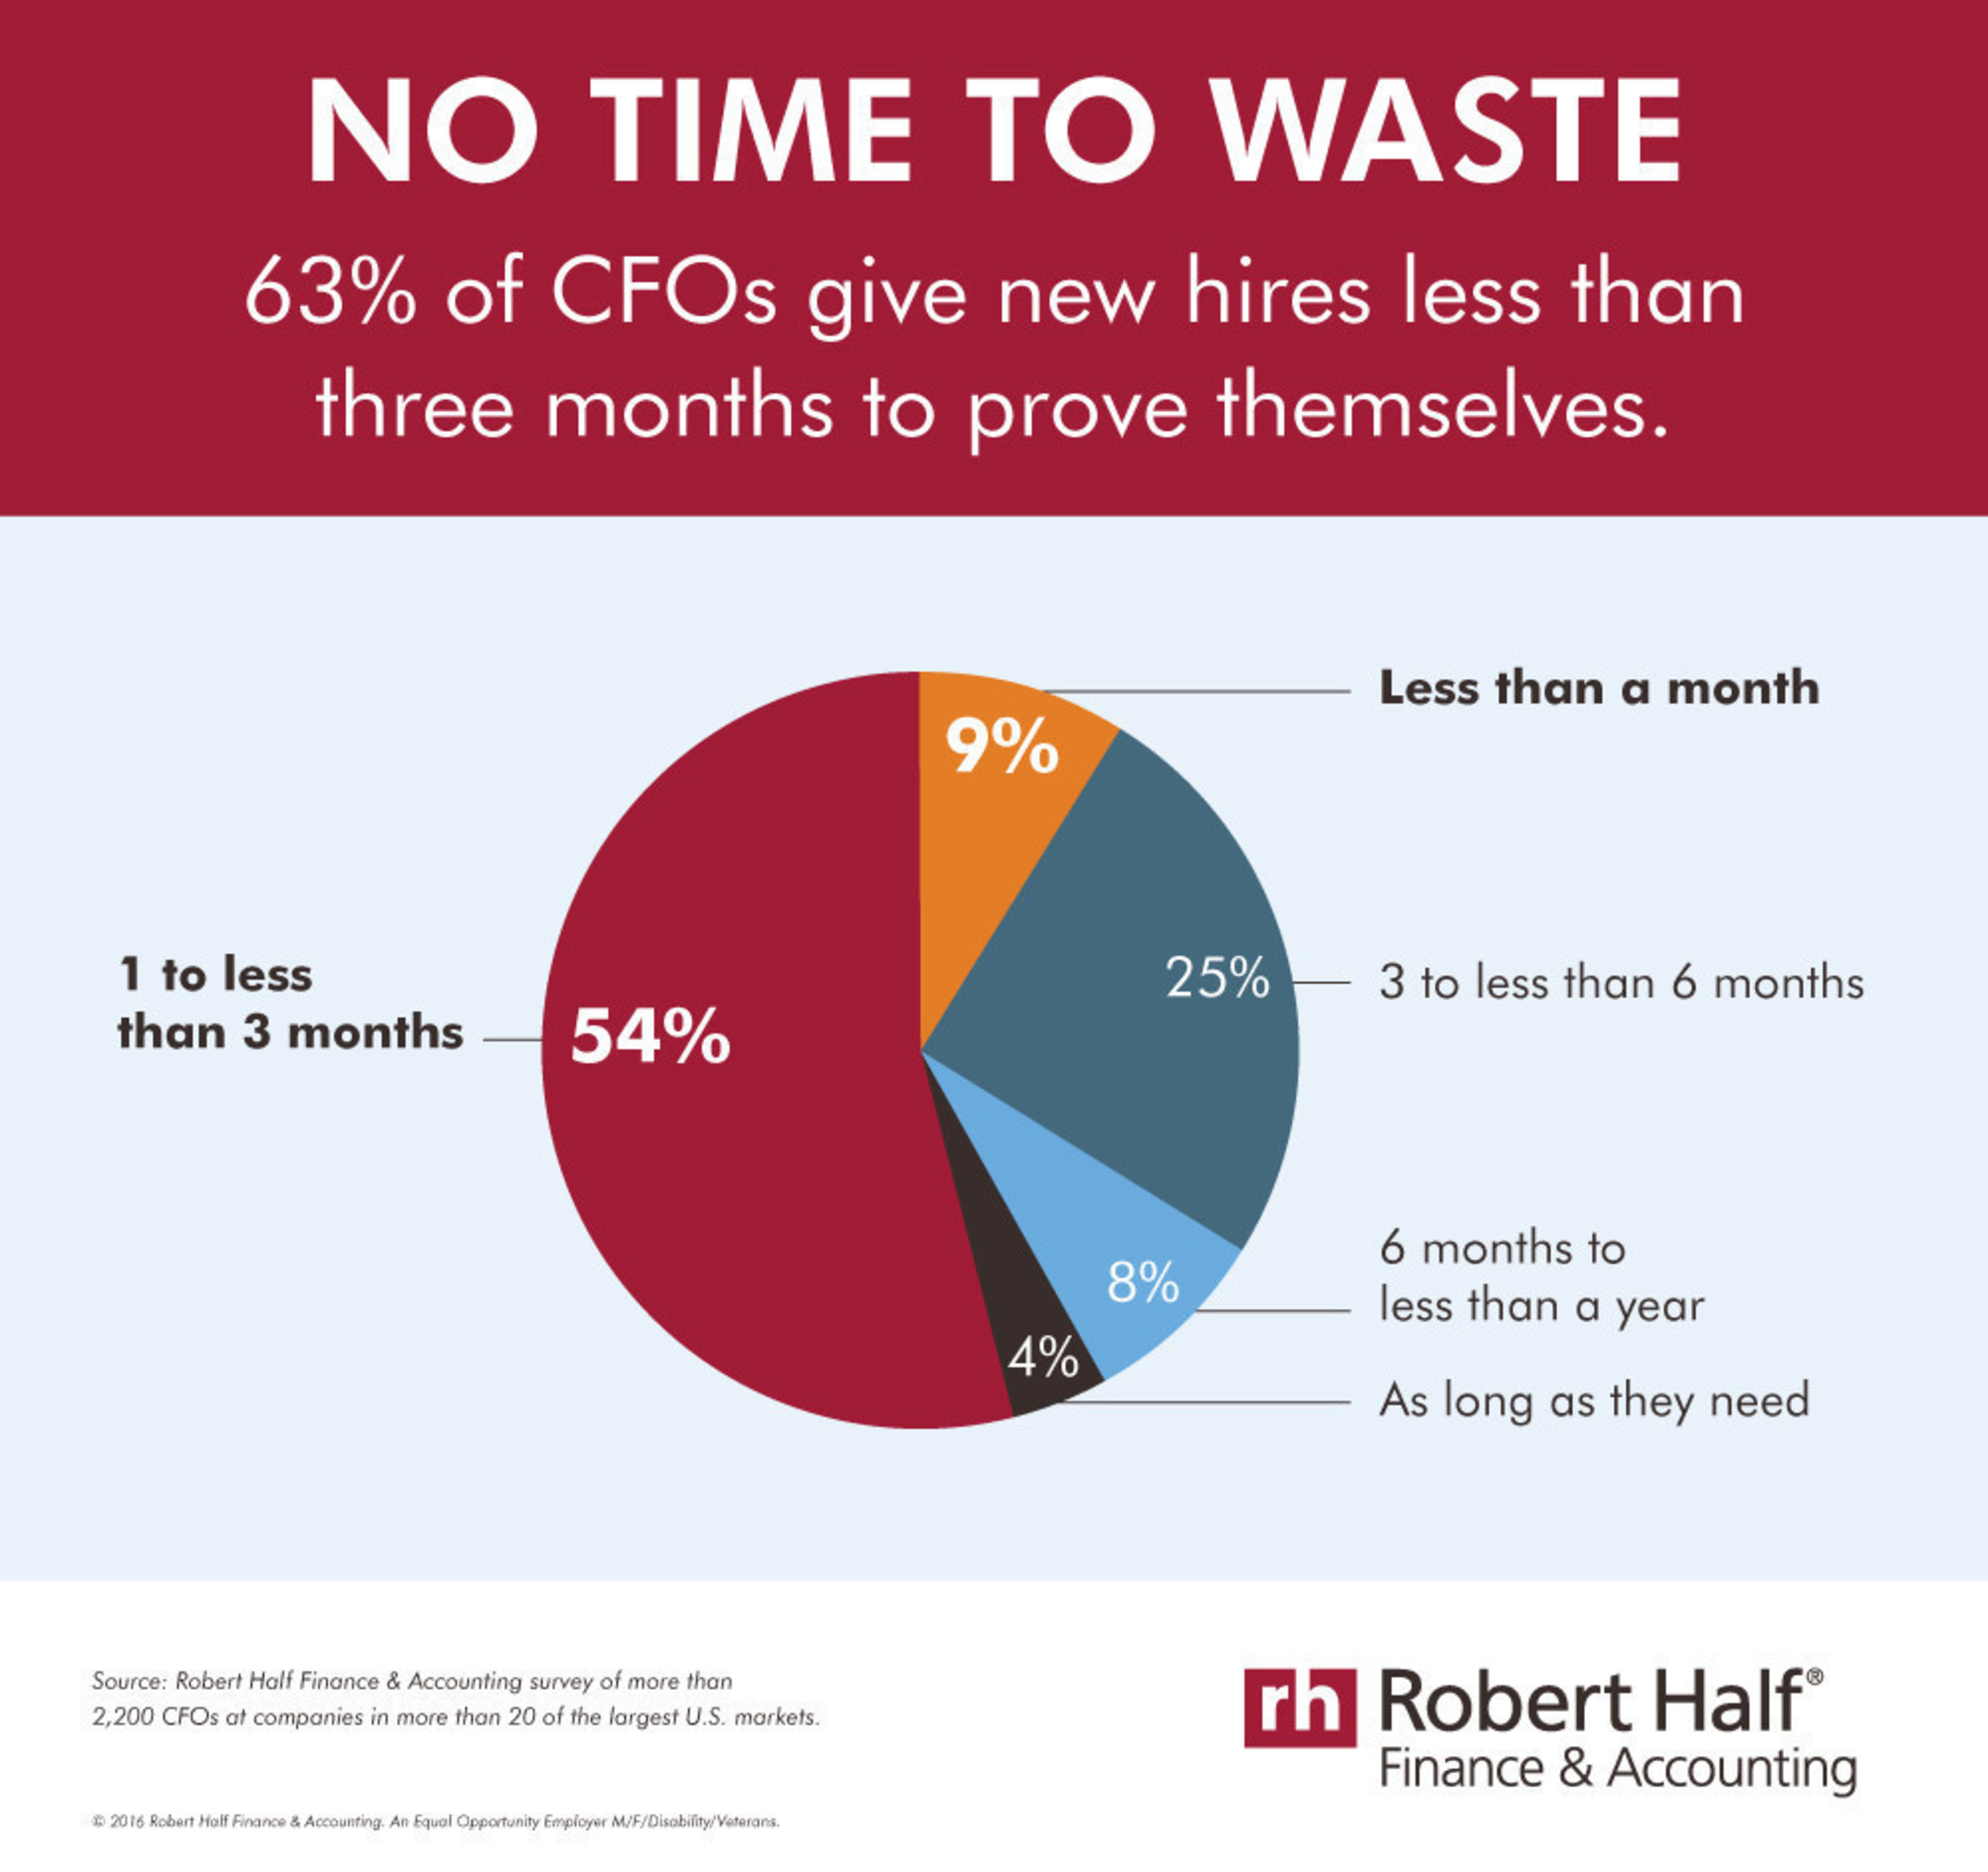 No Time to Waste: 63% of CFOs give new hires less than three months to prove themselves.